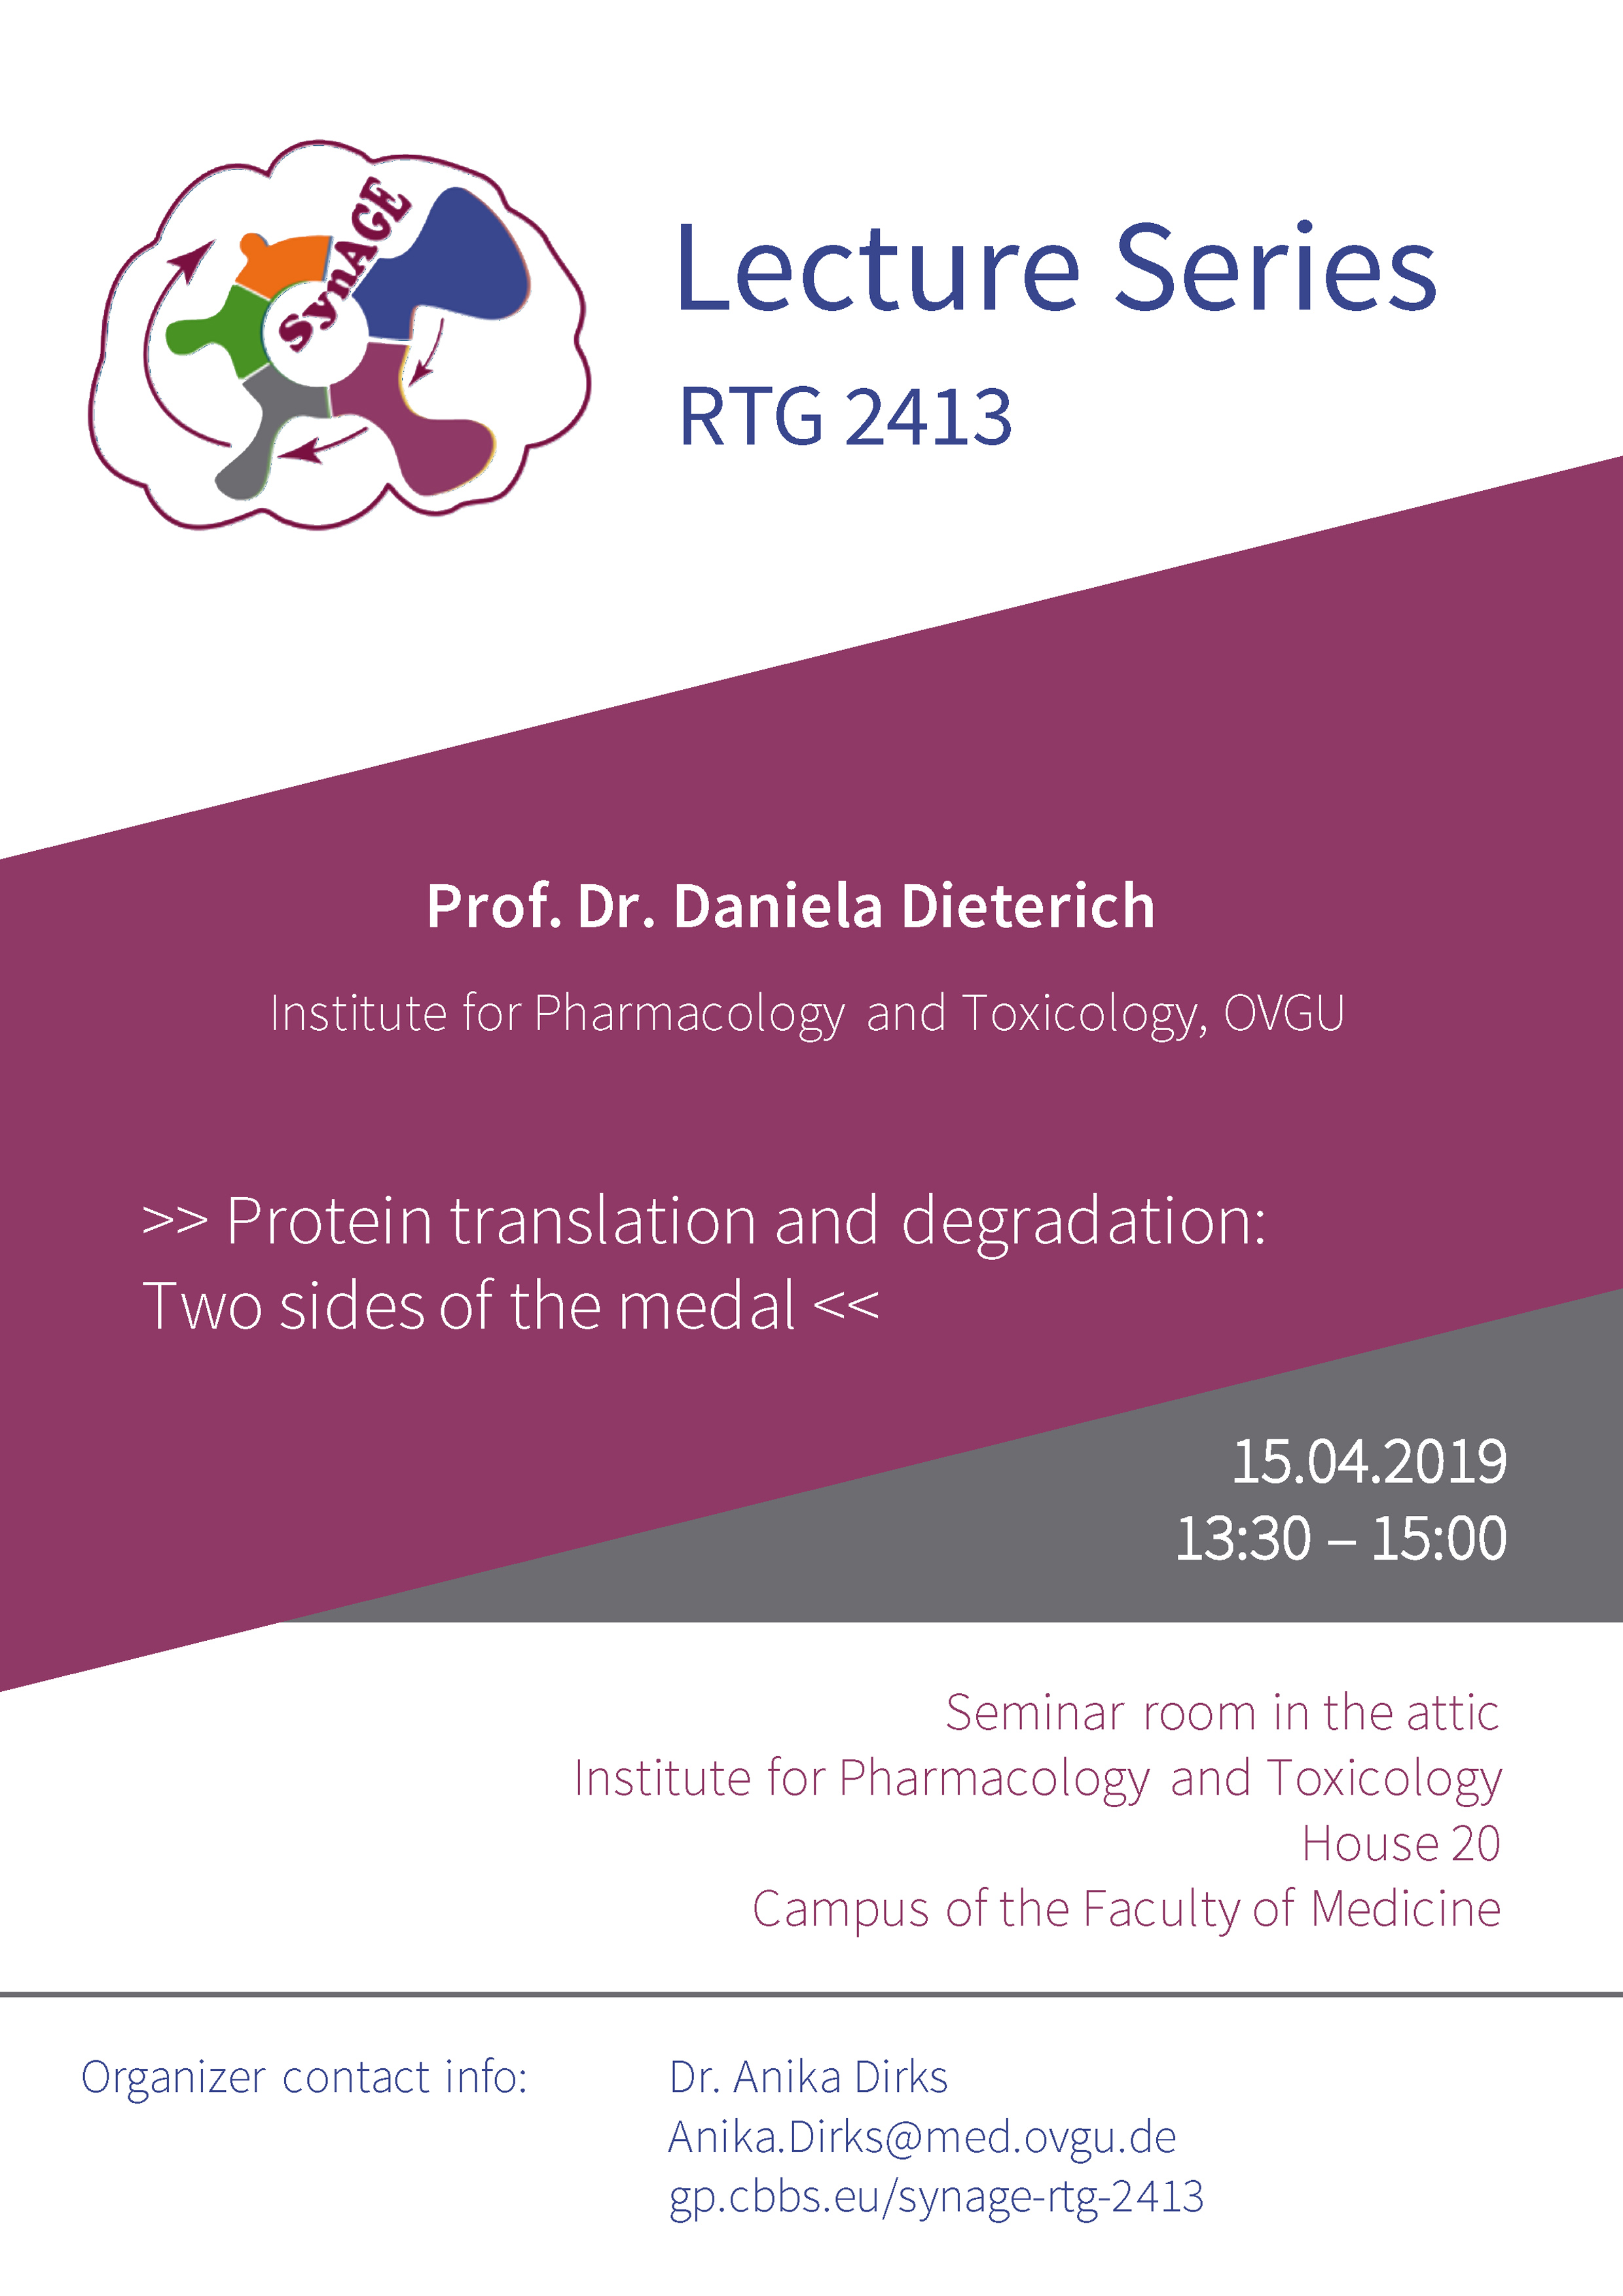 RTG 2413 Lecture: Protein translation and degradation: Two sides of the medal @ Institute for Pharmacology and Toxicology, House 20, Seminar room in the attic